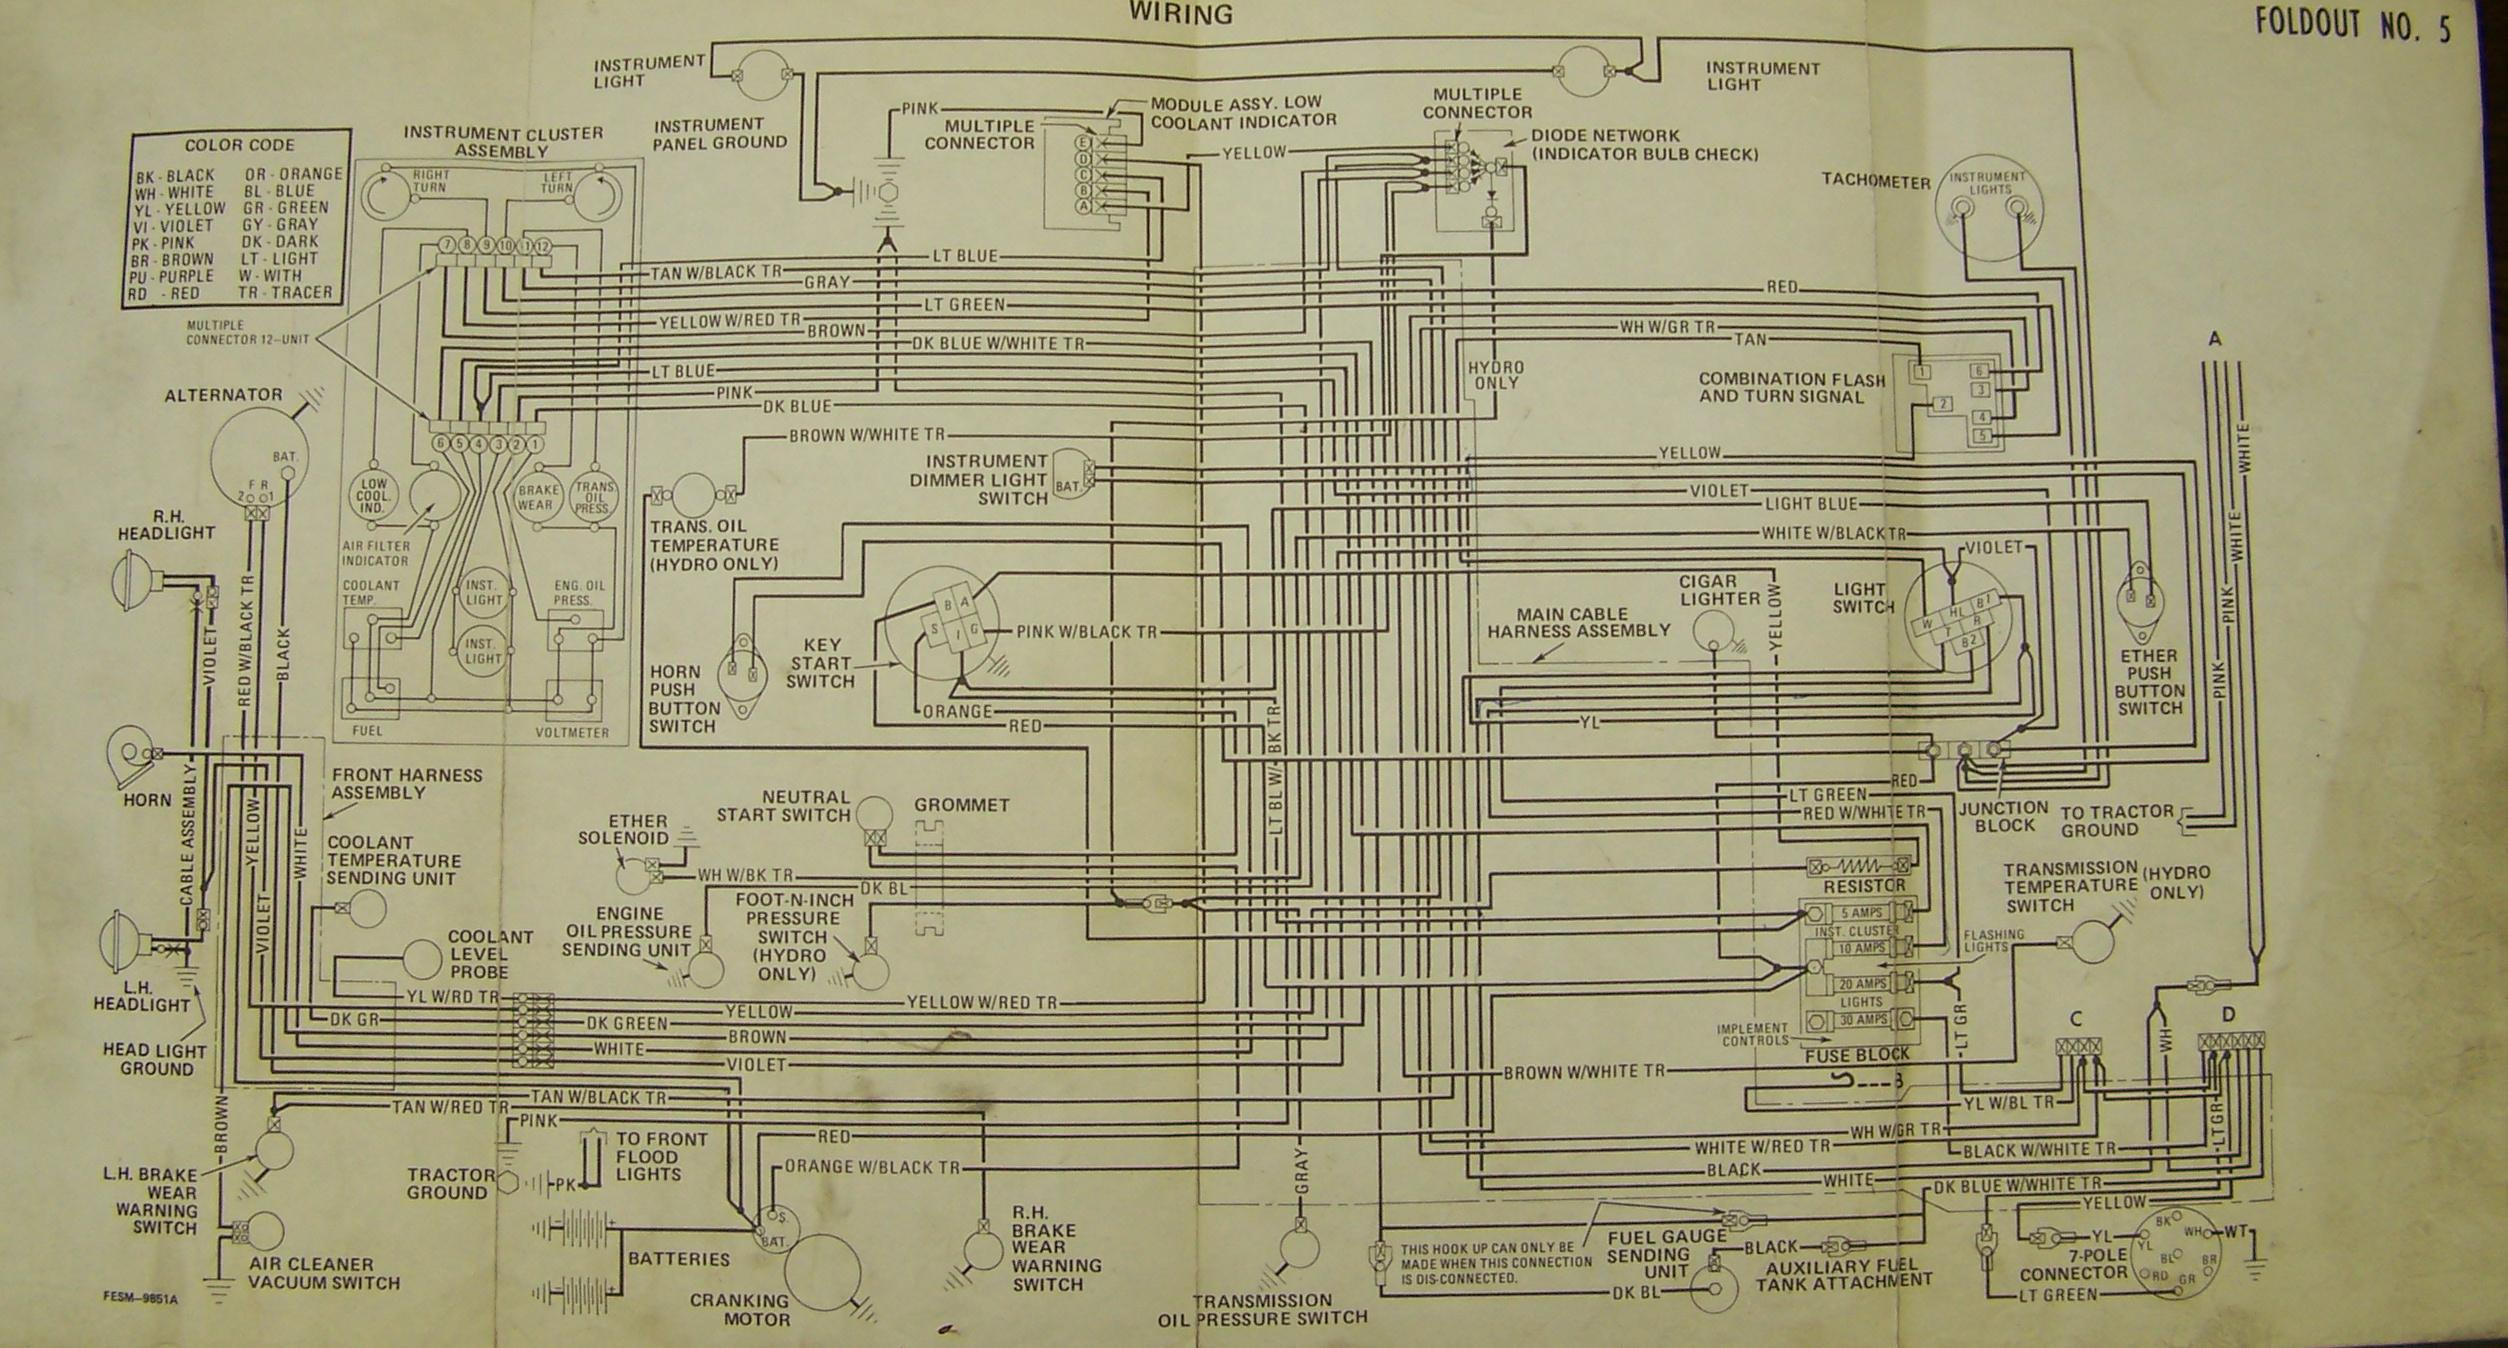 86series5 international motor diagrams ge electric motor wiring diagram 856 international wiring harness at bayanpartner.co